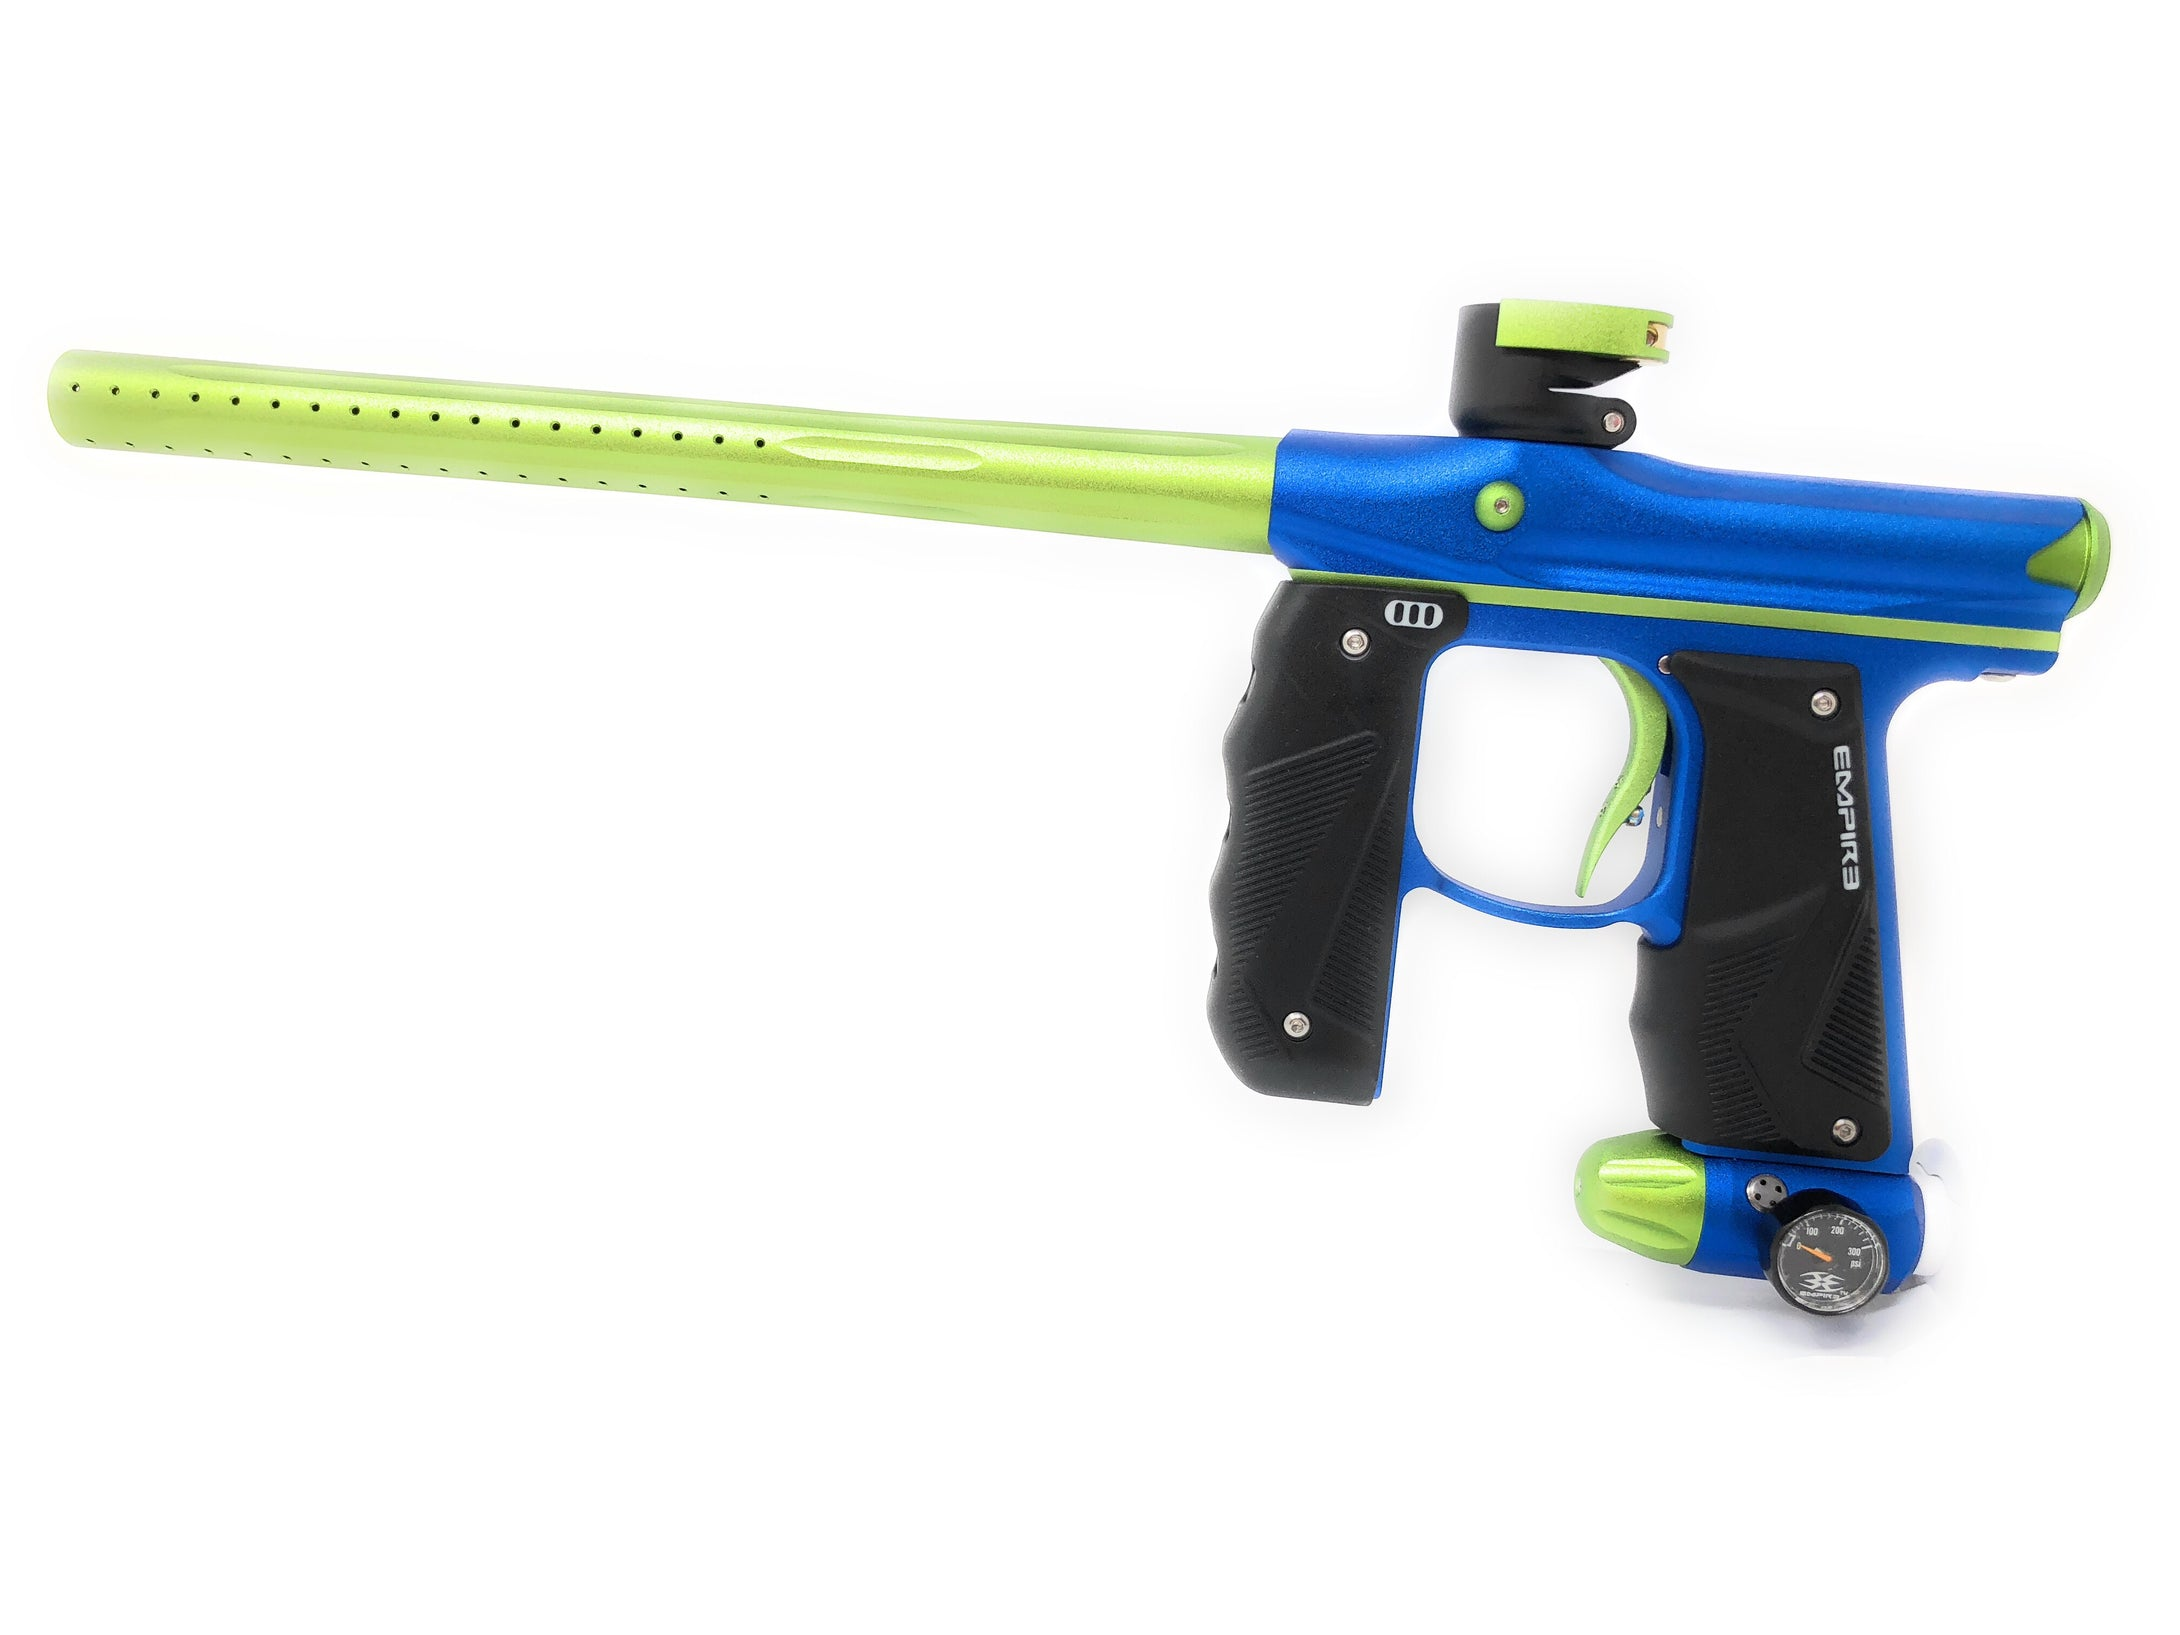 Photos of Empire Mini GS Paintball Marker - Blue/Green. Photo taken by drpaintball.com